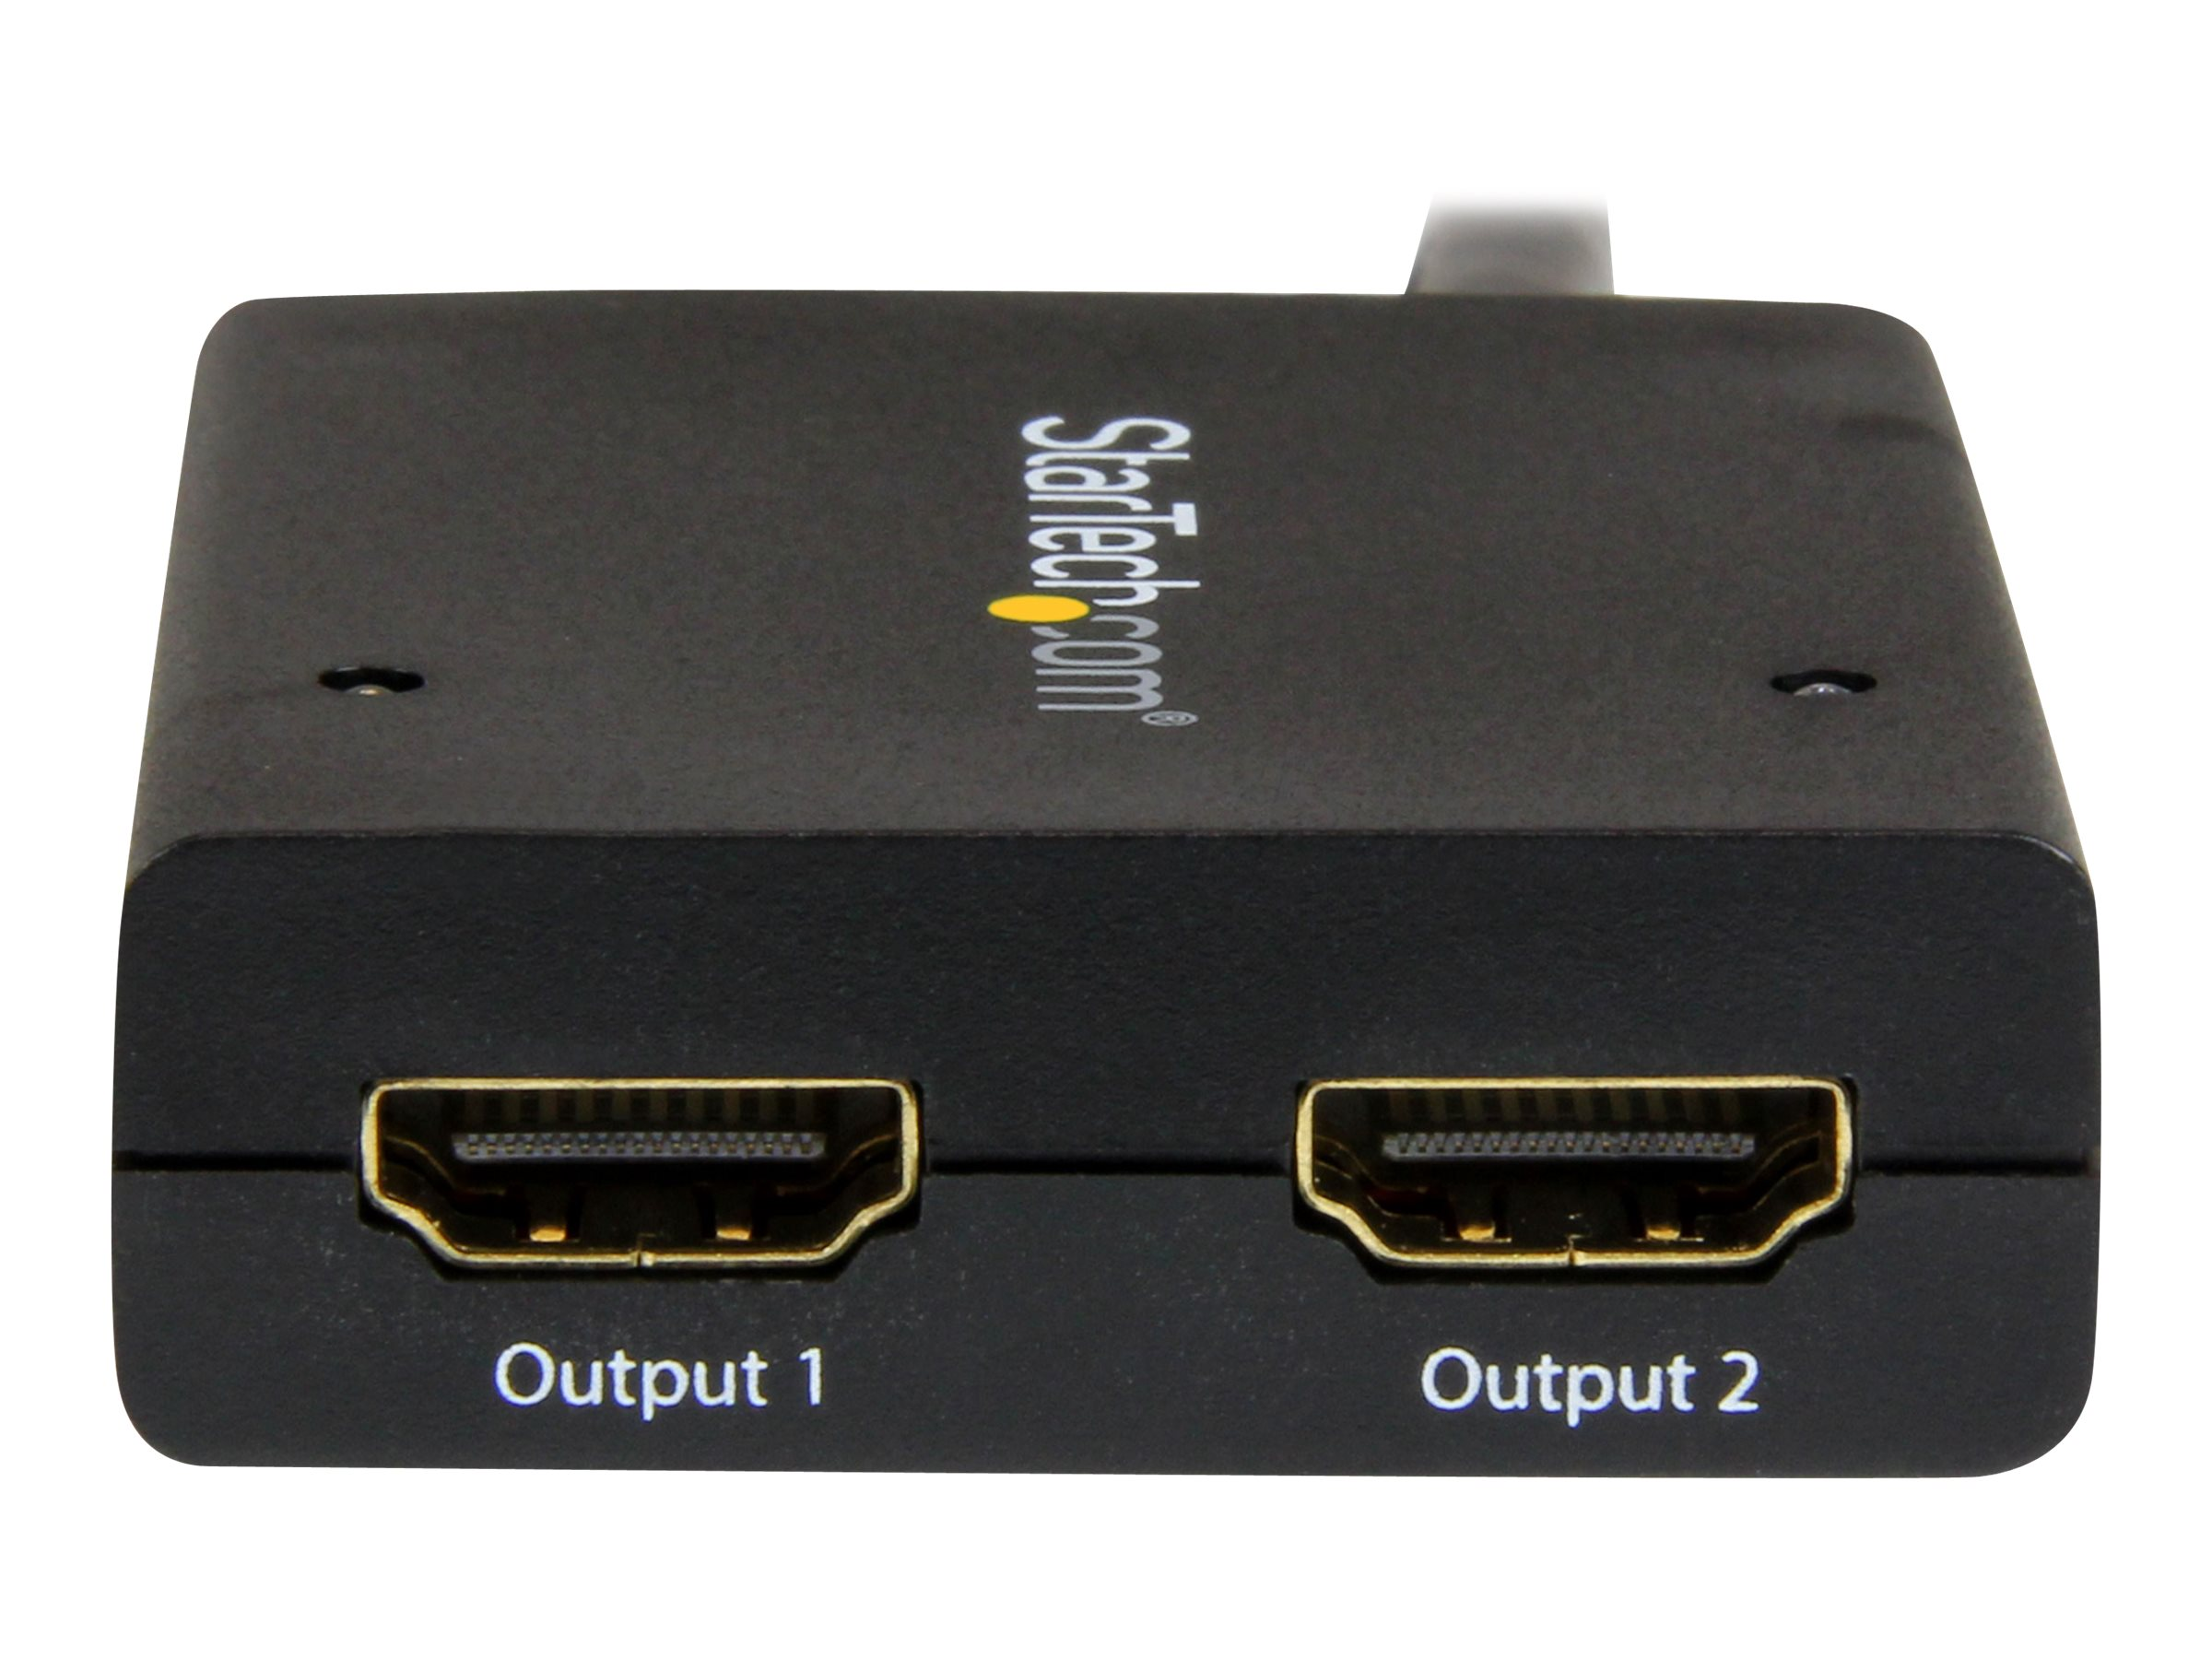 StarTech.com 4K HDMI 2-Port Video Splitter, ST122HD4KU